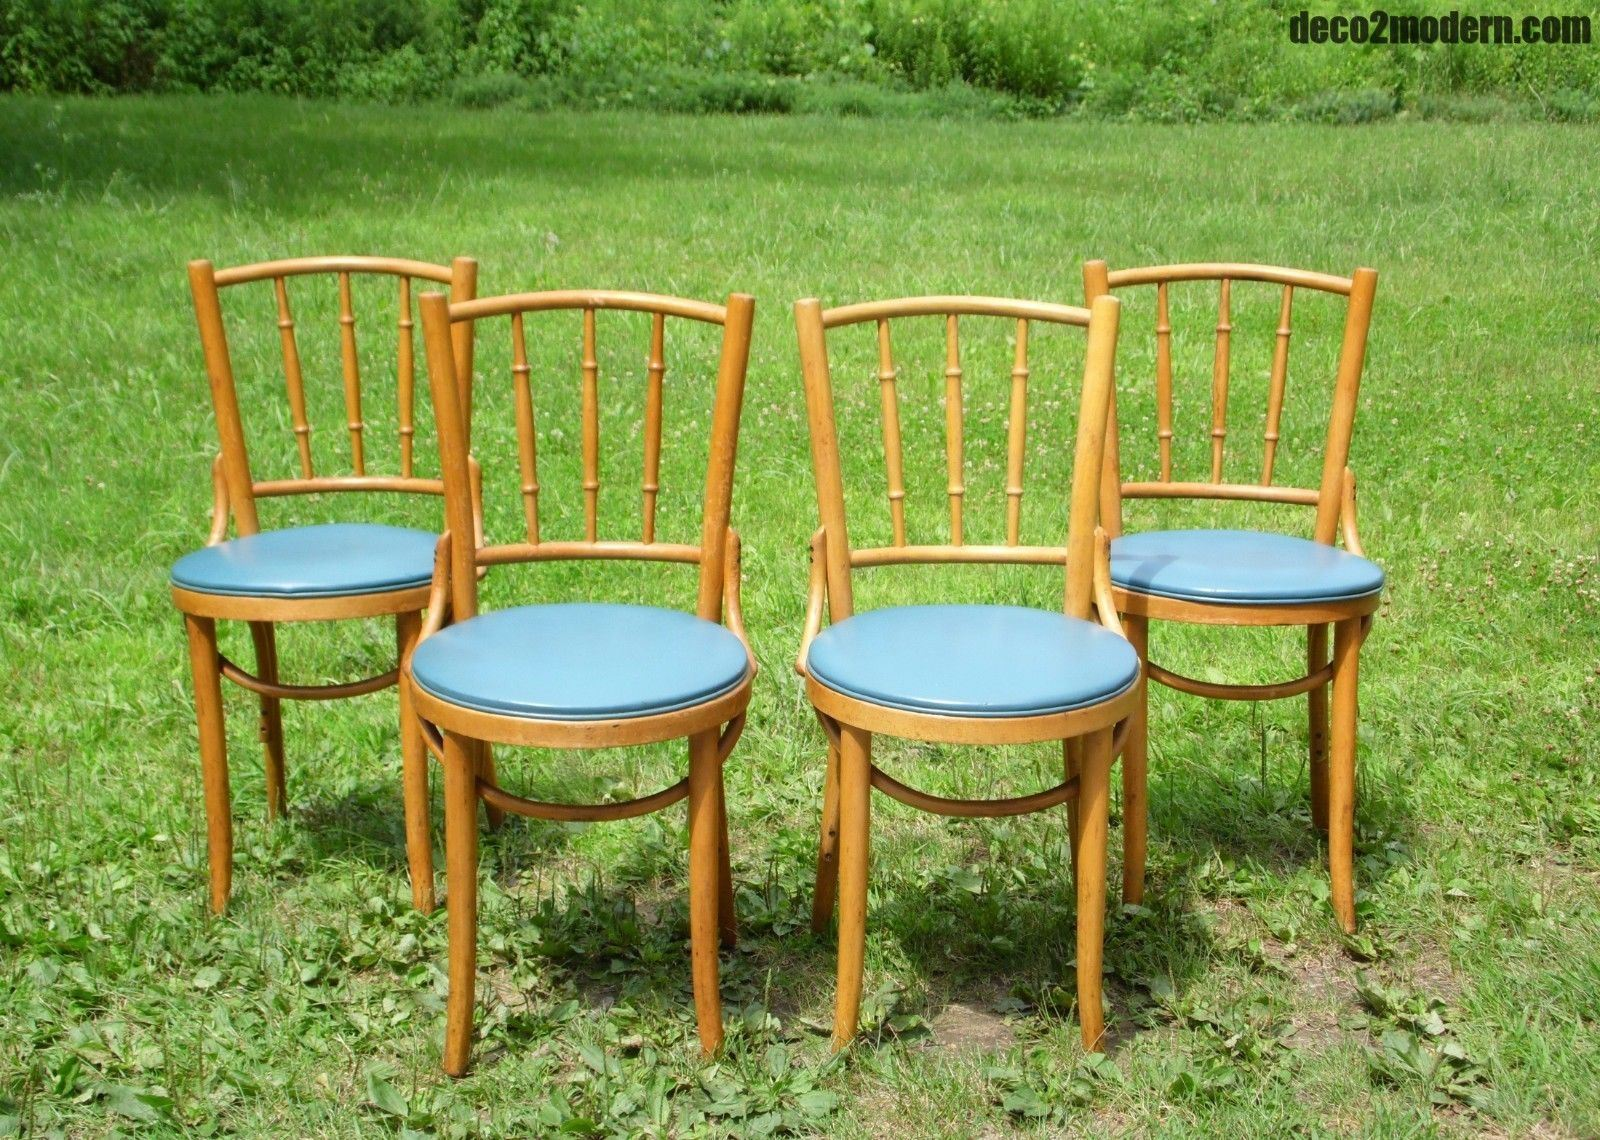 Vintage thonet style cafe chairs with stenciled seats - Please Include Your Zip Code For Quotes